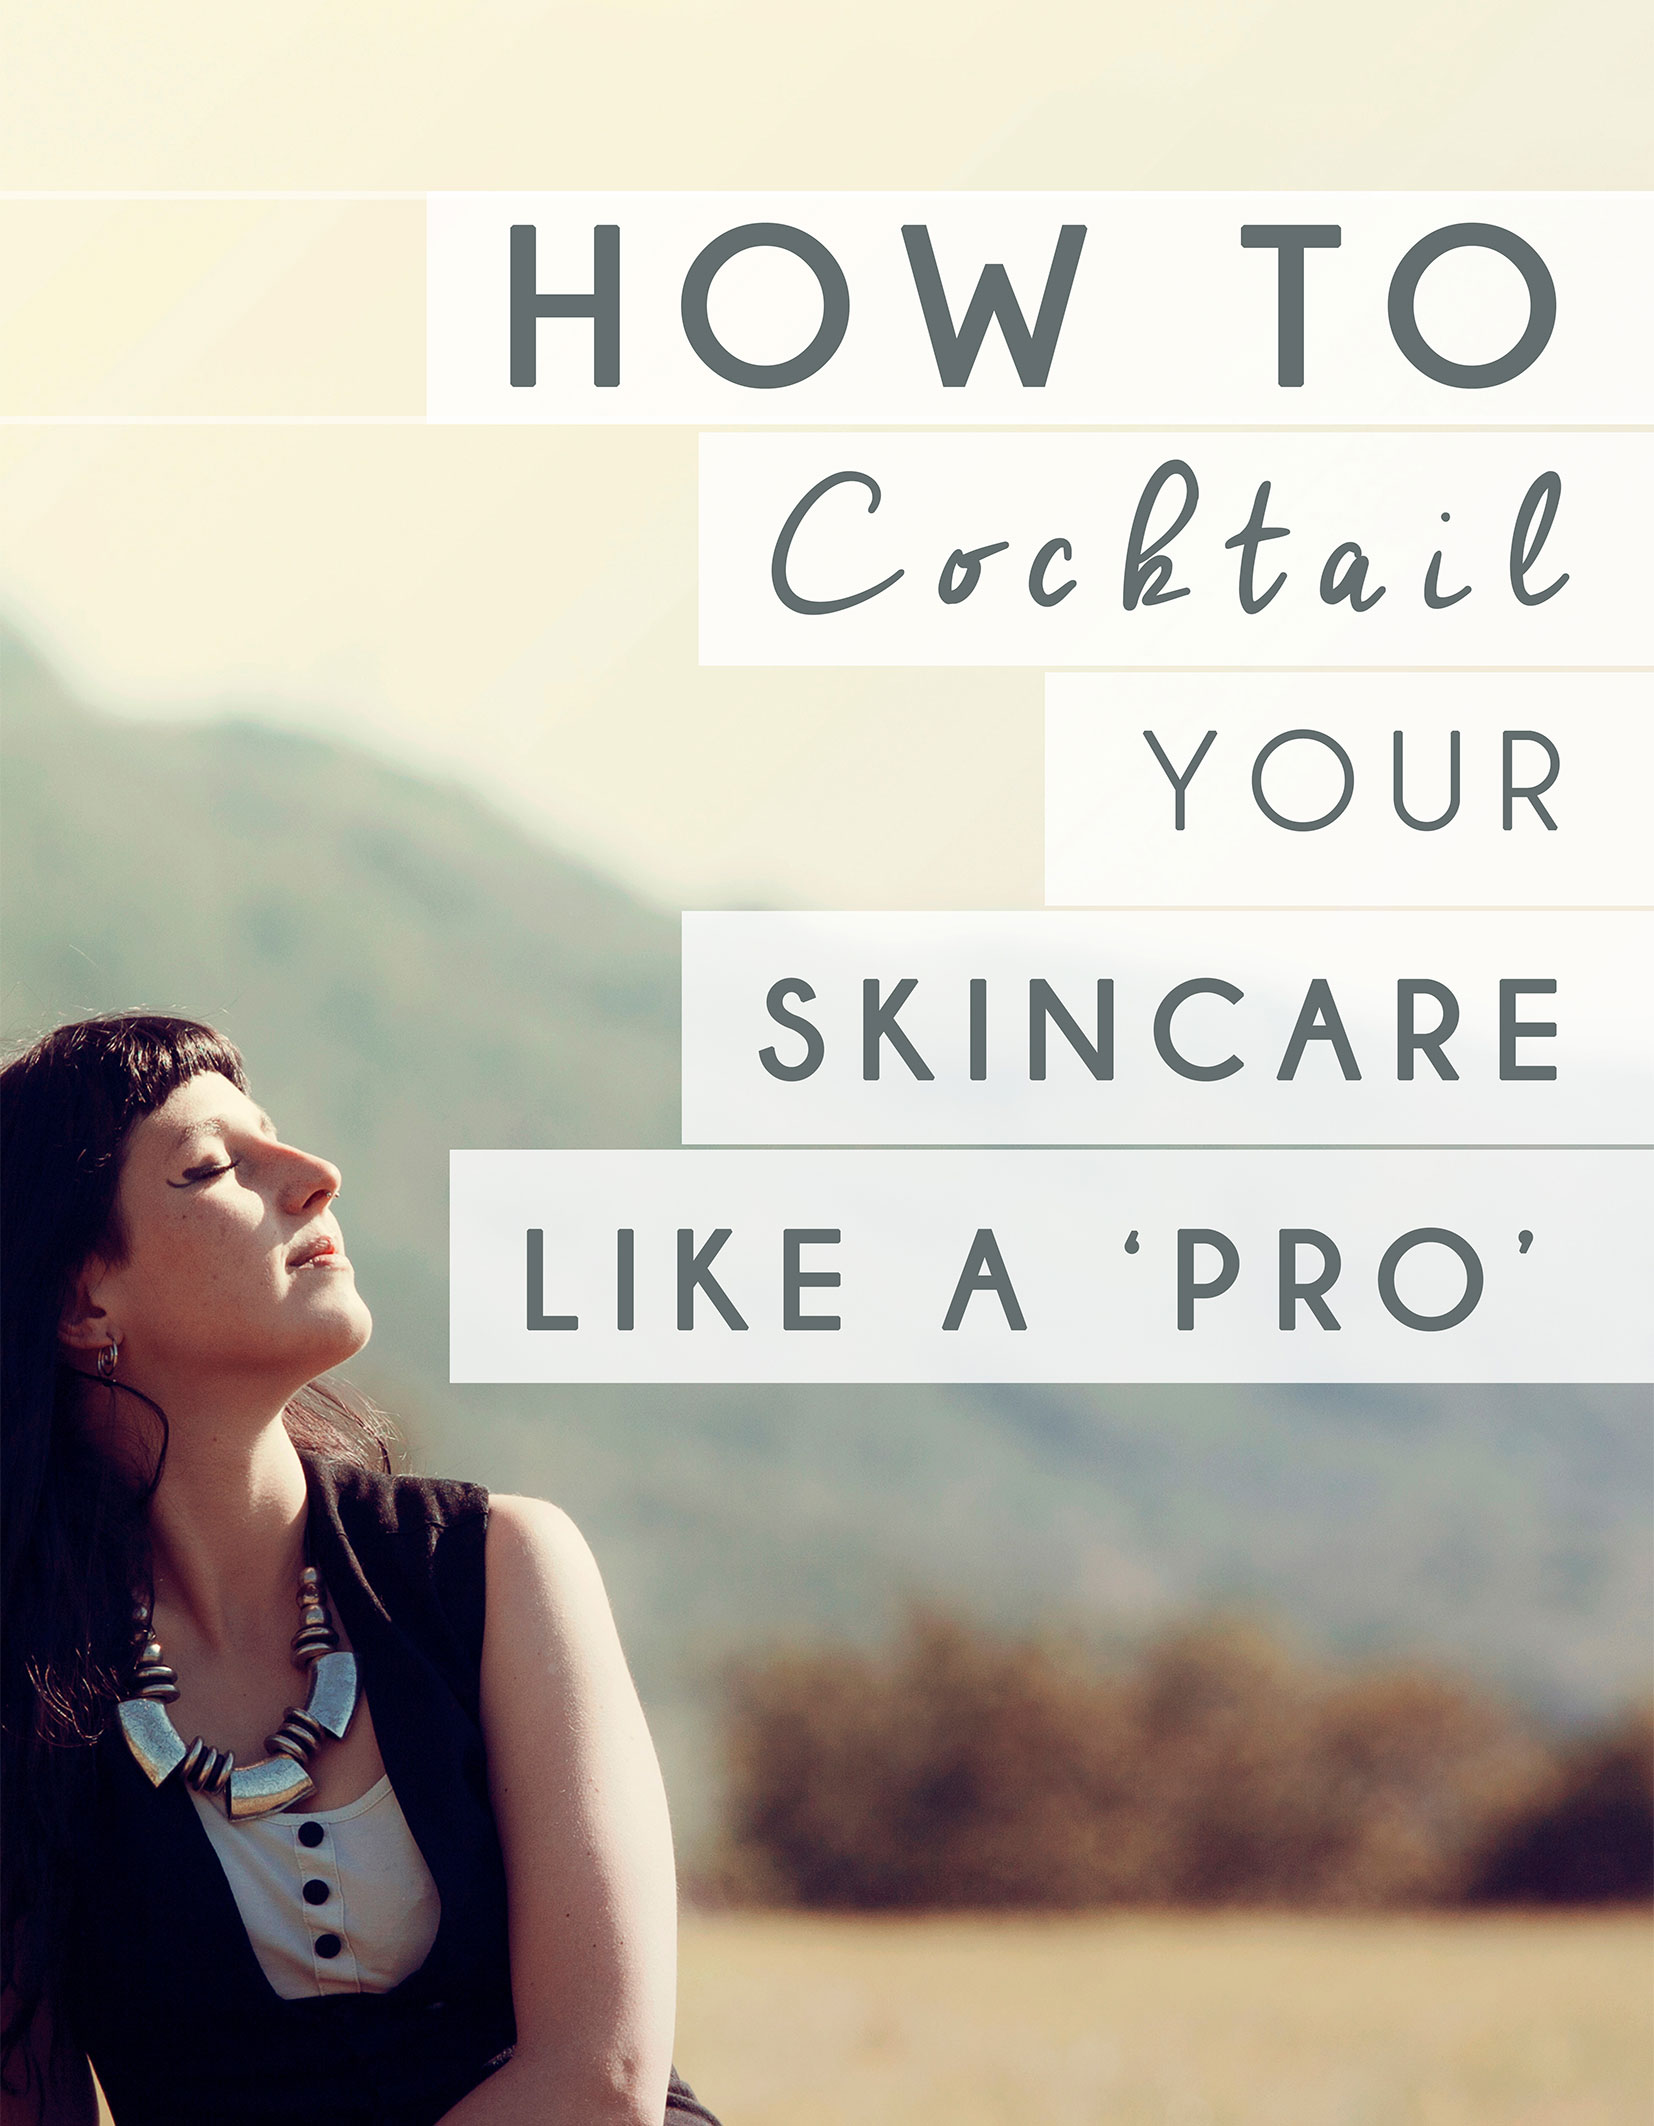 How to cocktail your skincare like a pro. Simple rules to your perfect skincare routine.